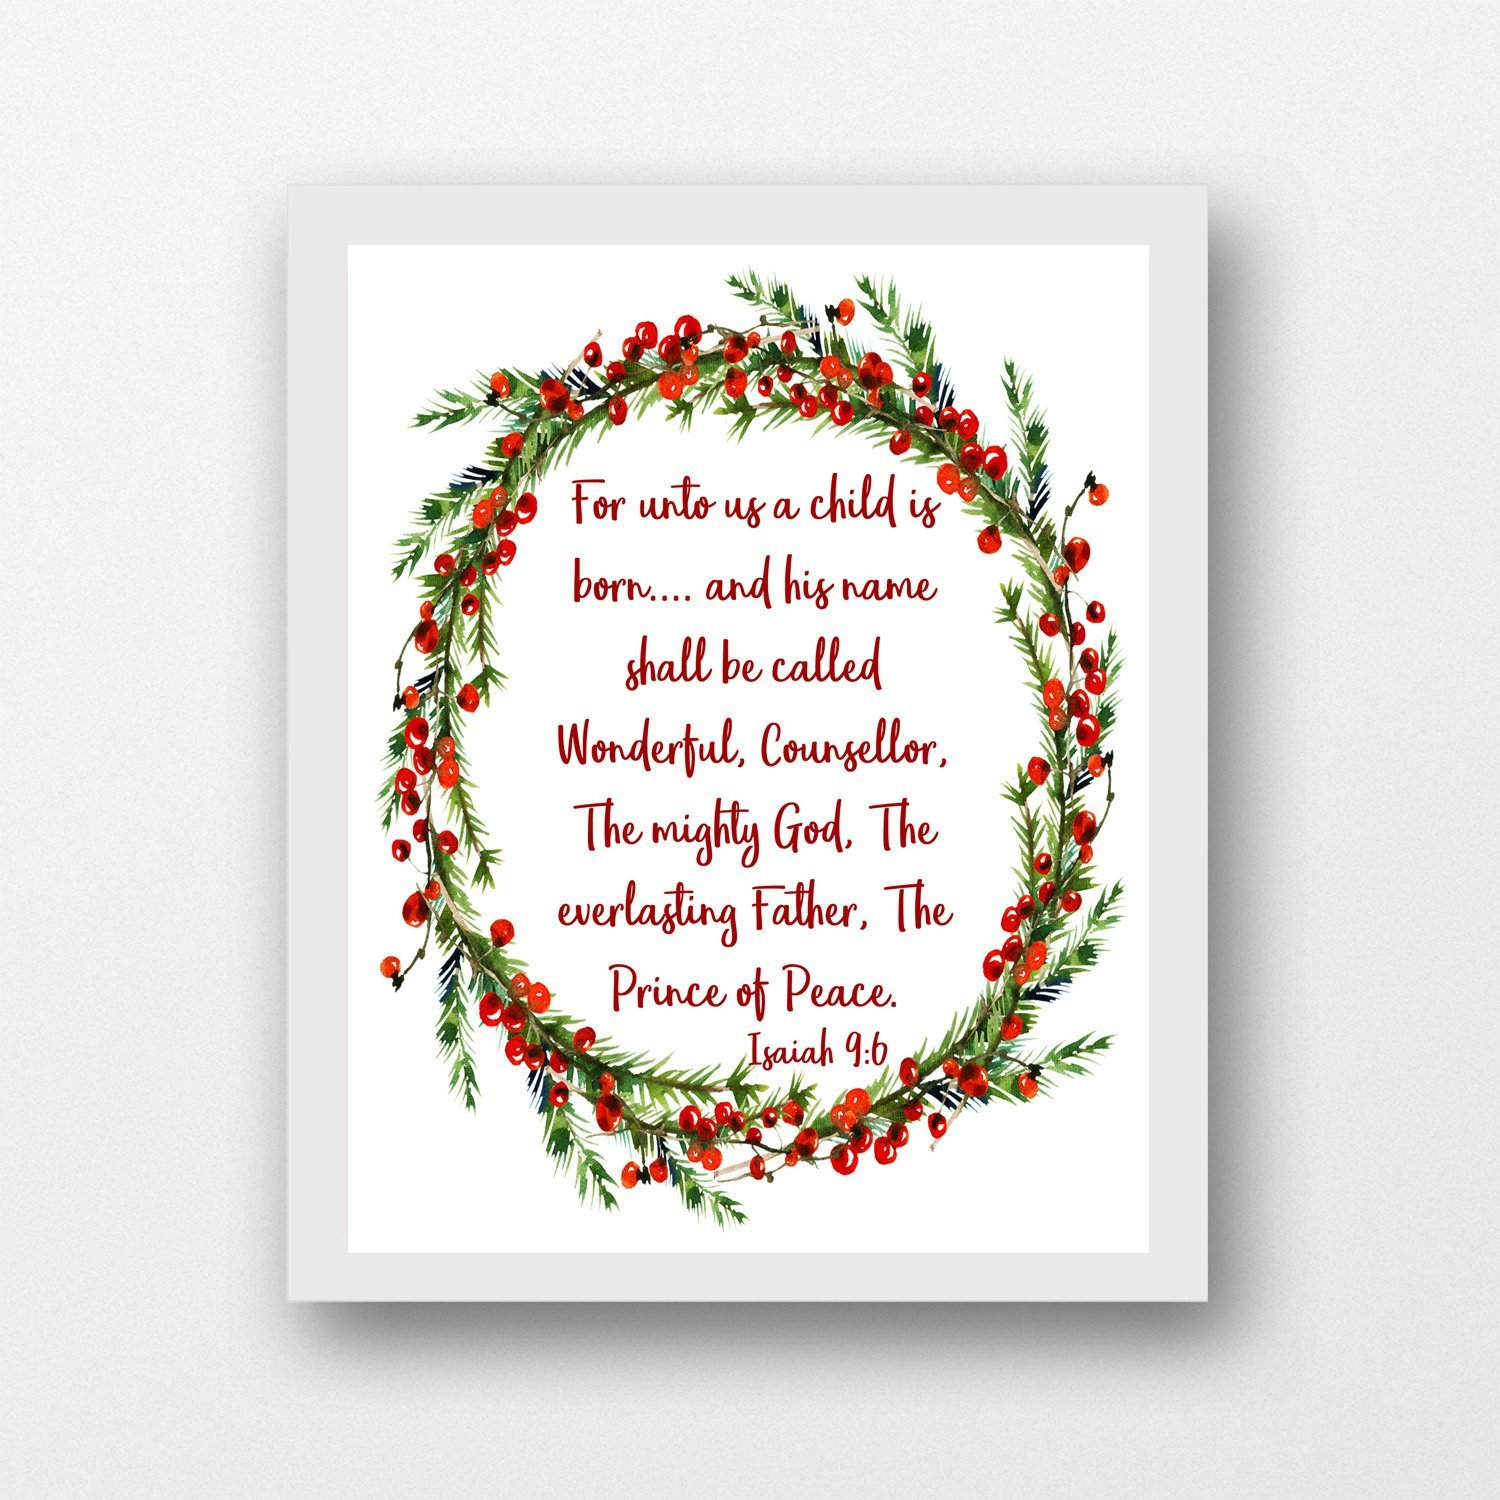 Prince of peace isiah 9 6 clipart png free stock Isaiah 9:6, For Unto Us a Child is Born, printable instant download  Christmas wall art png free stock